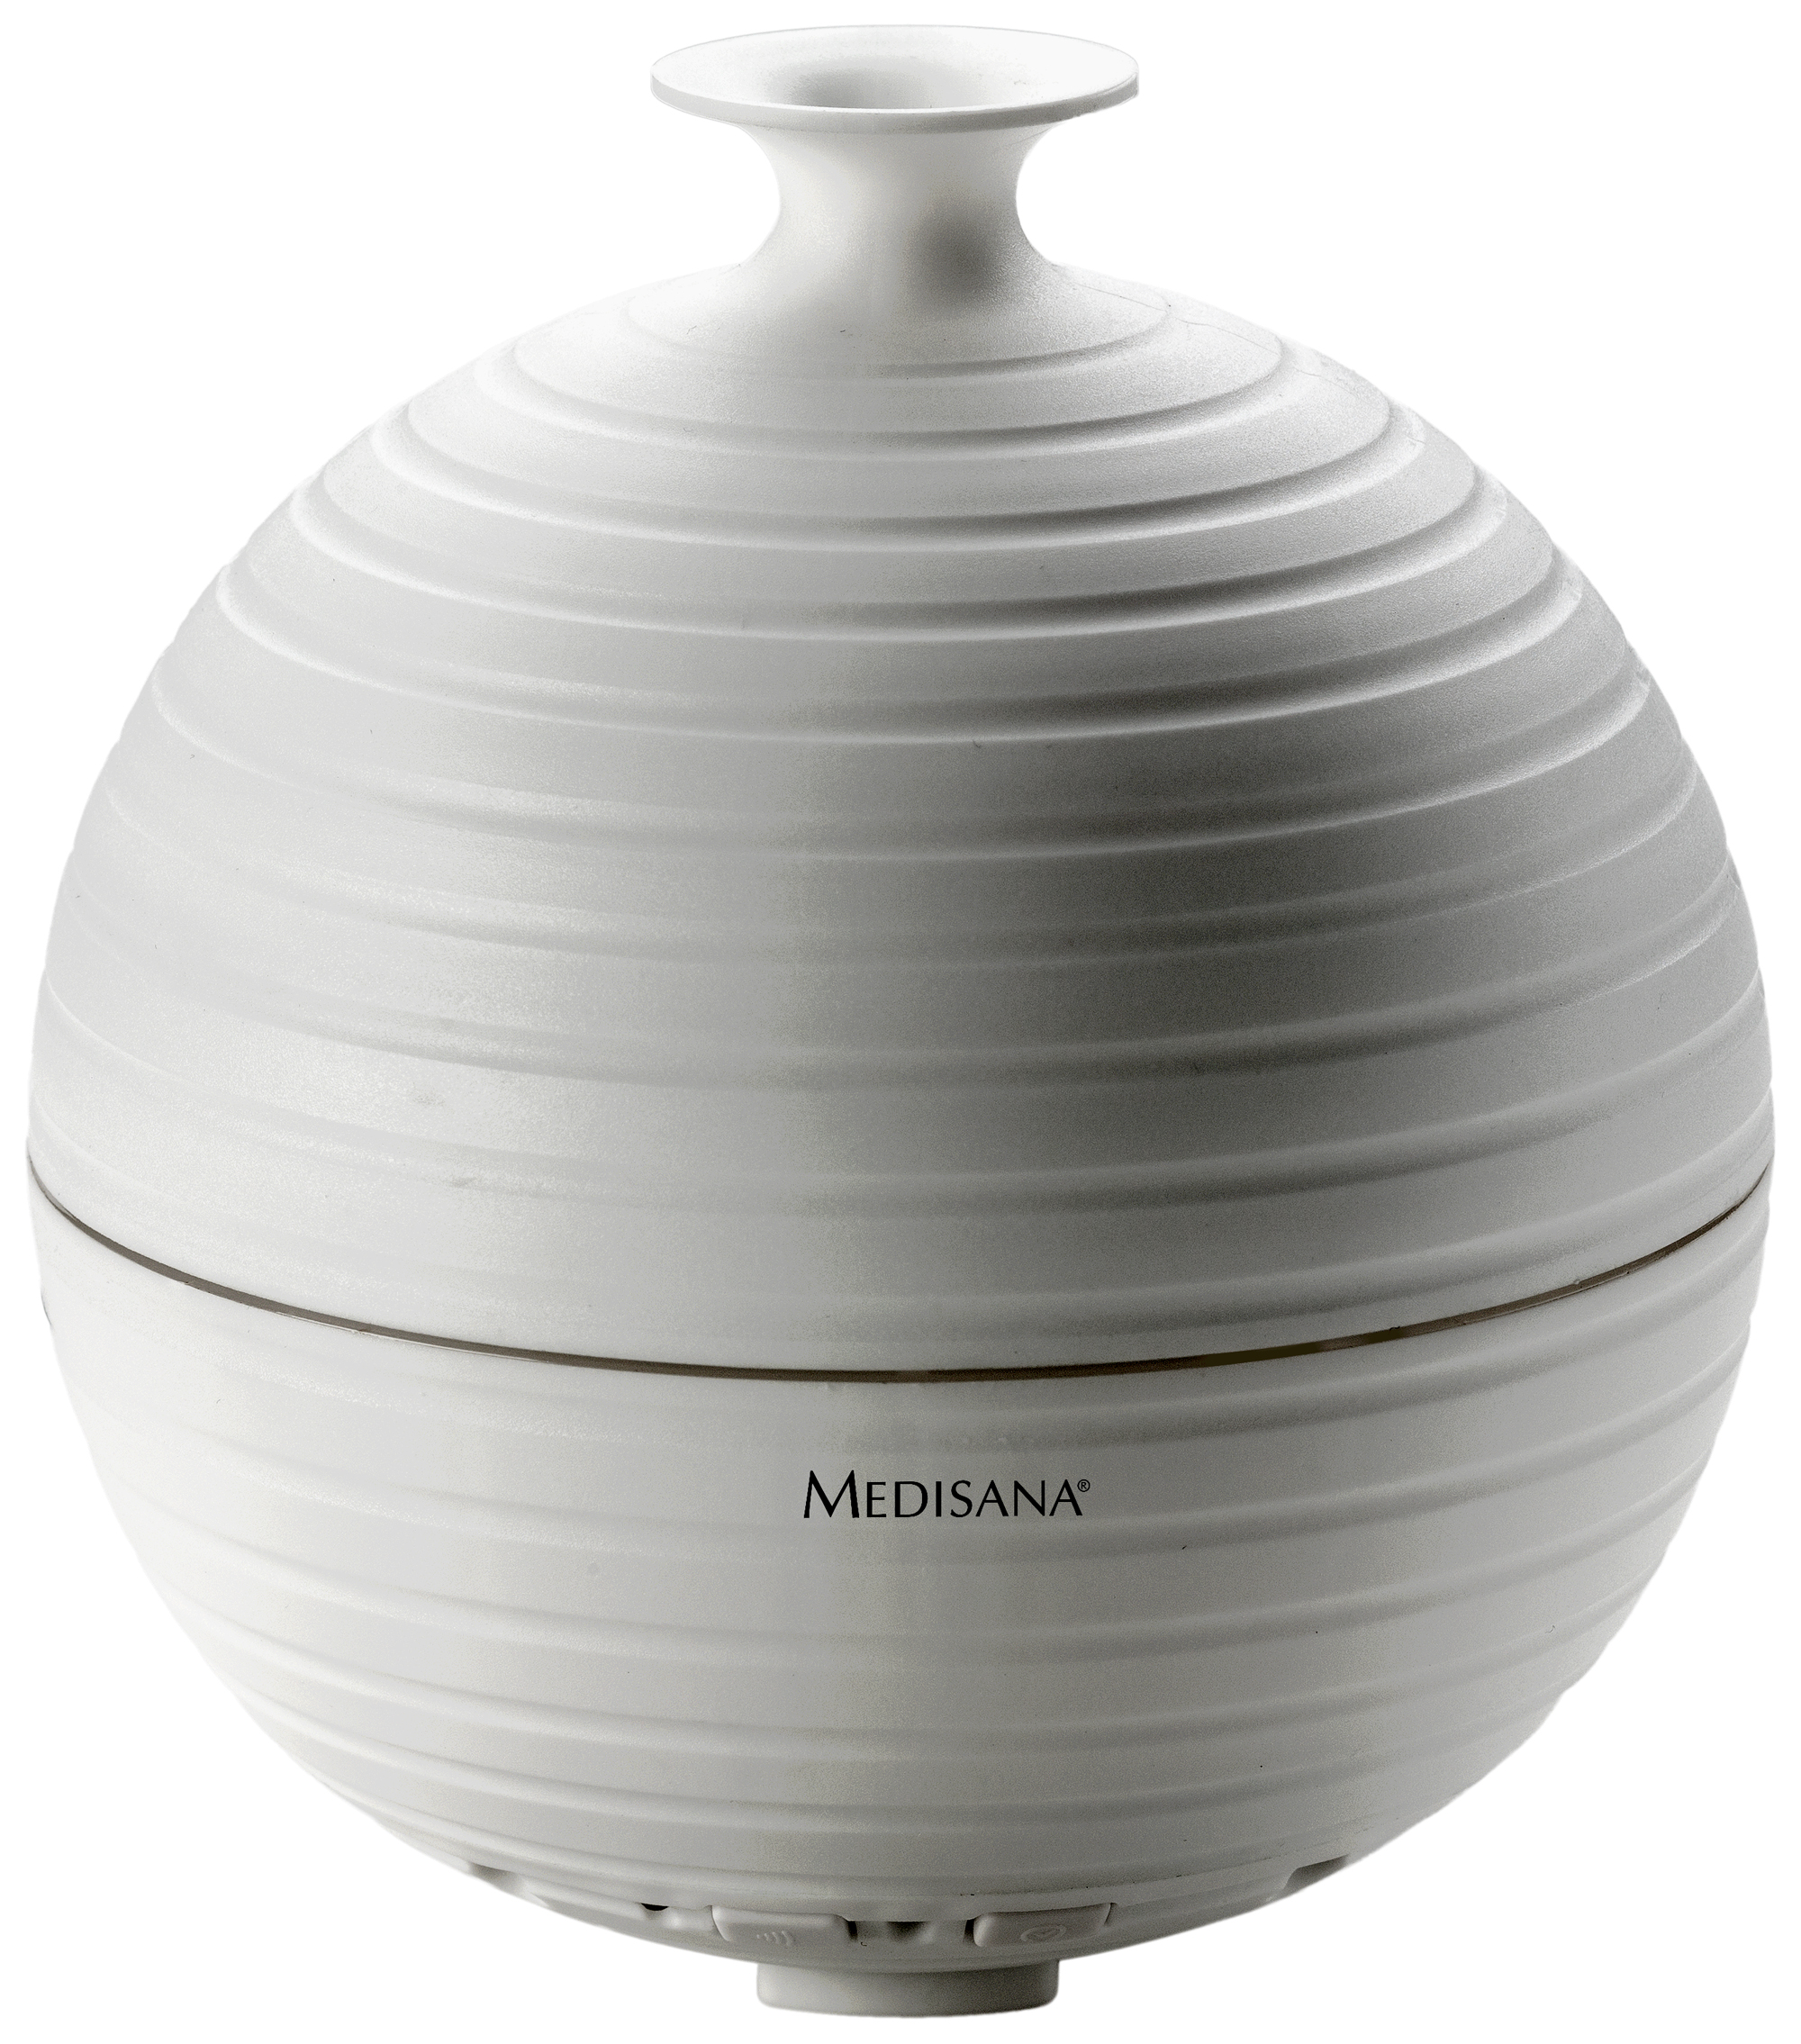 medisana aroma diffuser ad 620. Black Bedroom Furniture Sets. Home Design Ideas